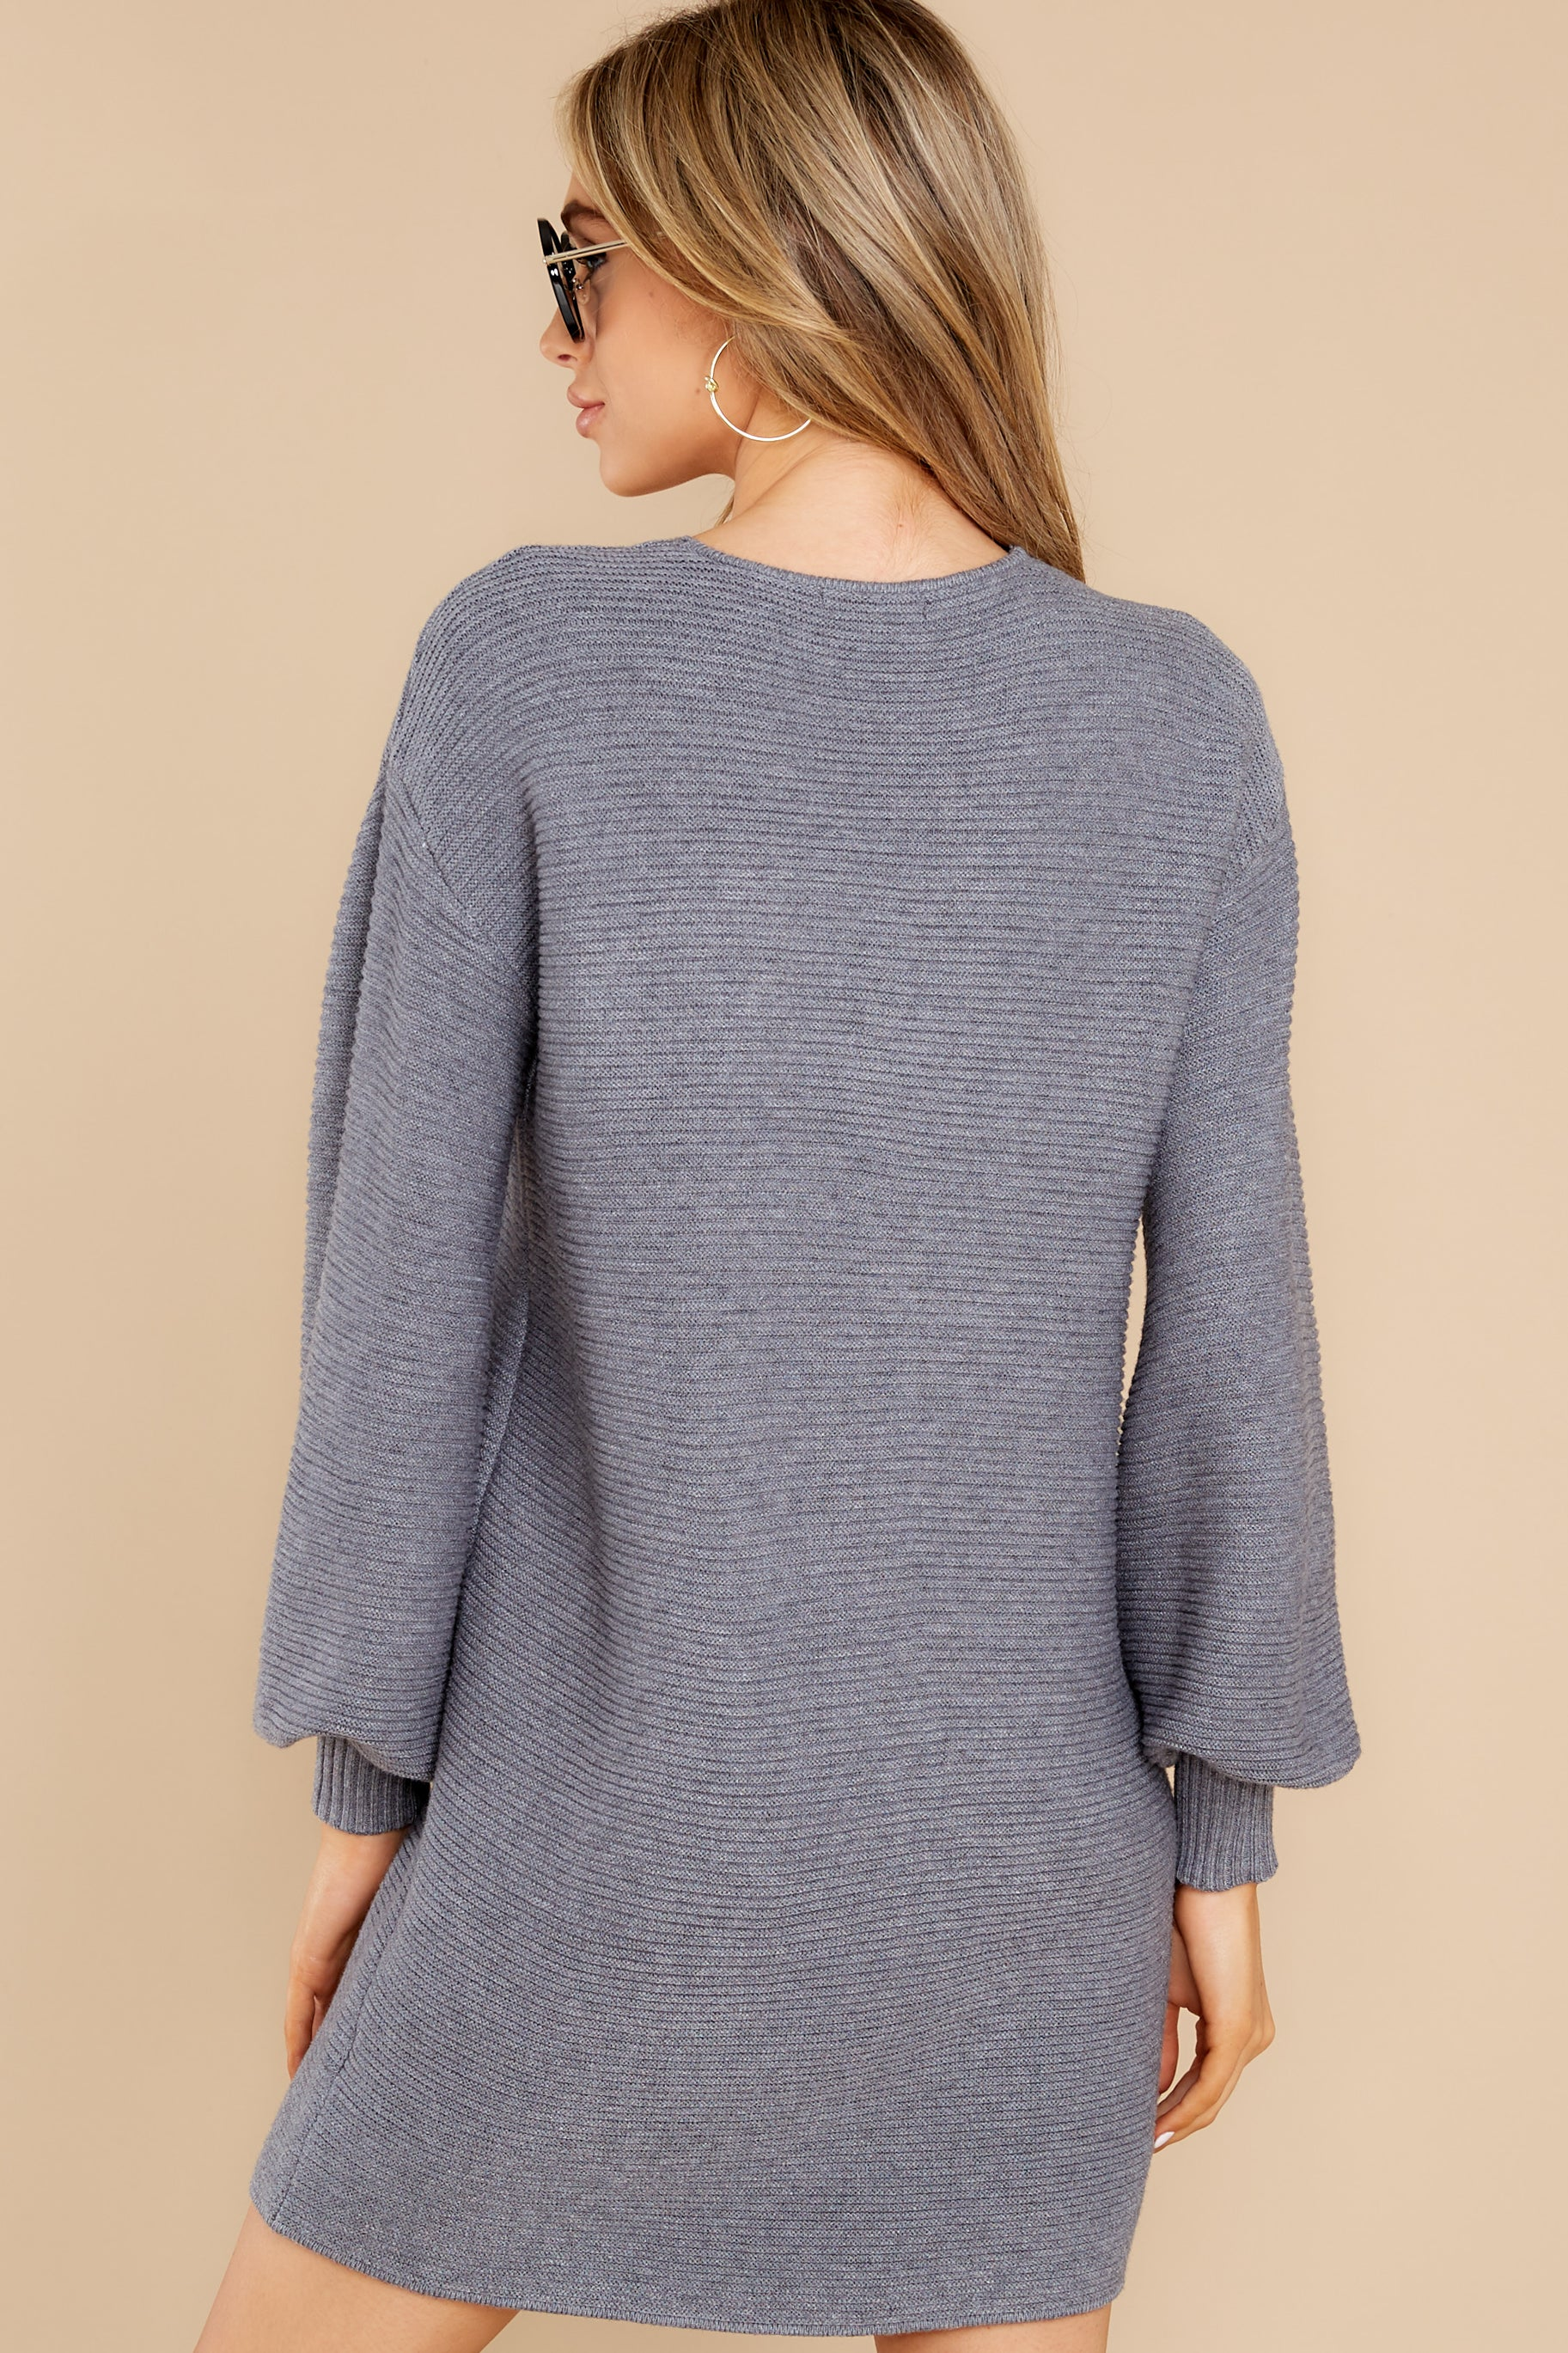 8 Collected Thoughts Charcoal Sweater Dress at reddress.com